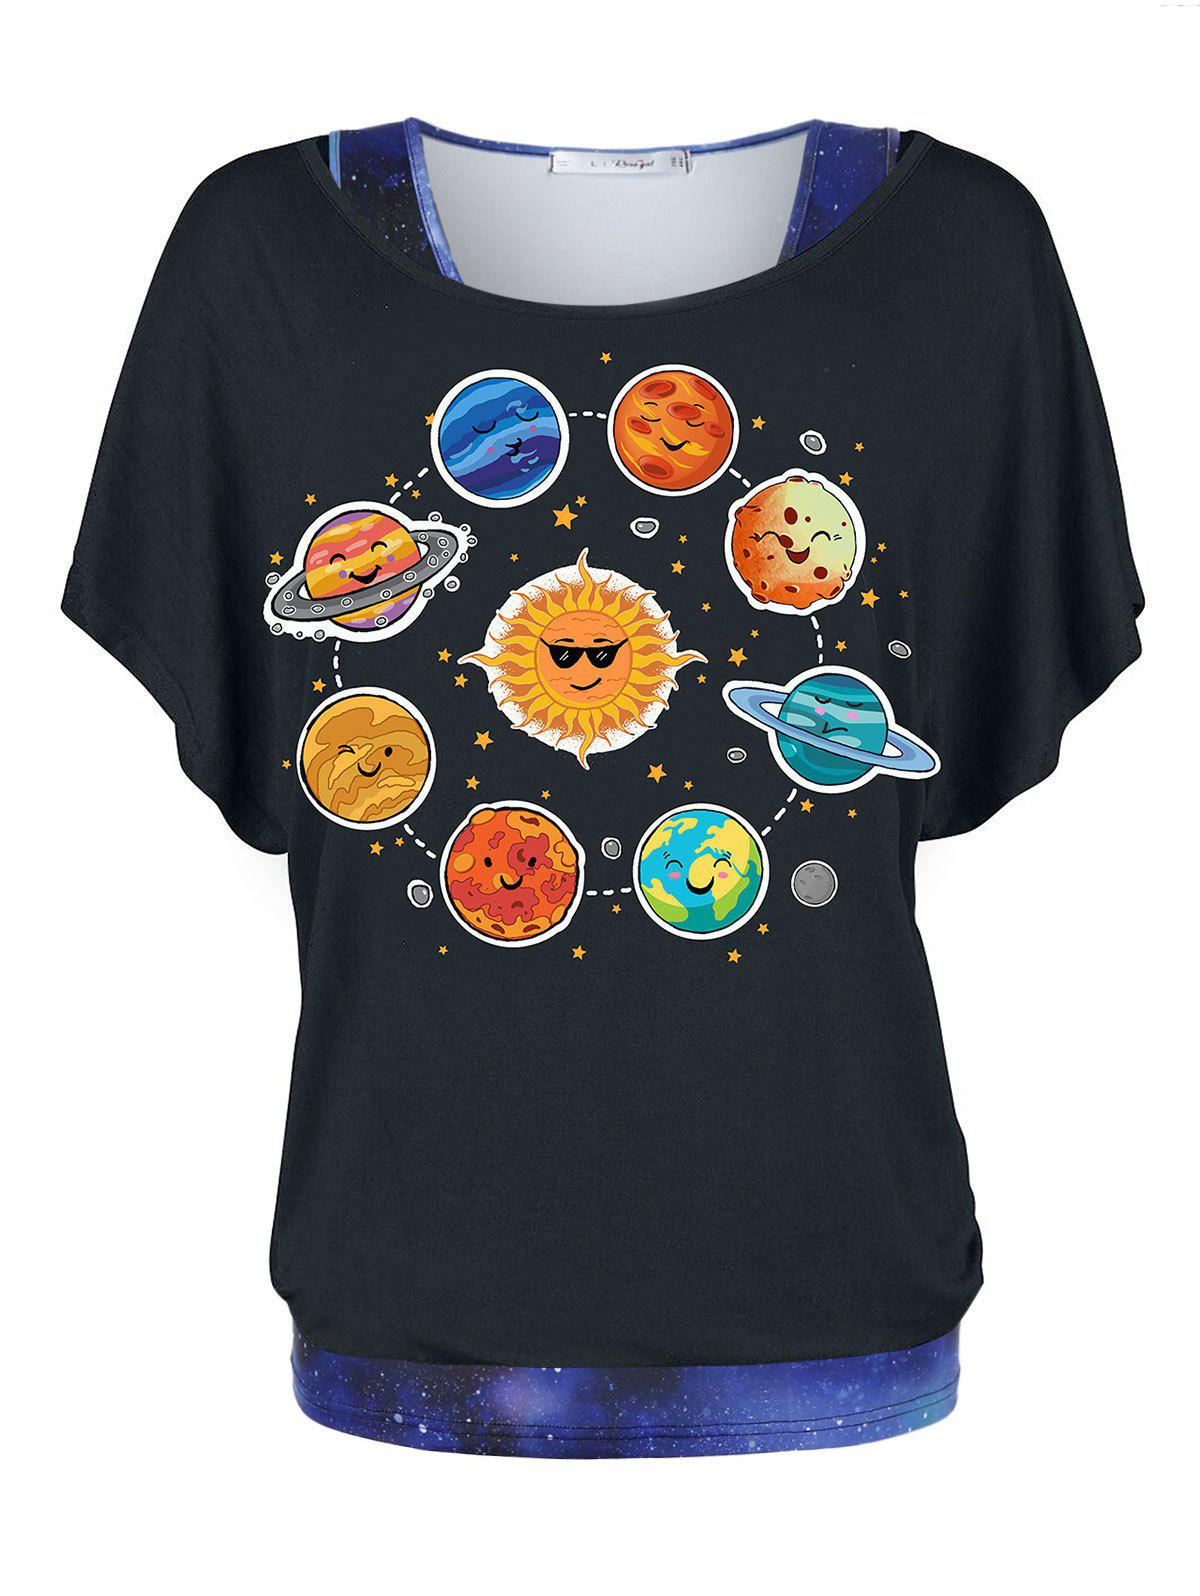 Sale Plus Size Galaxy 3D Print Tank Top and Planet Print T Shirt Twinset